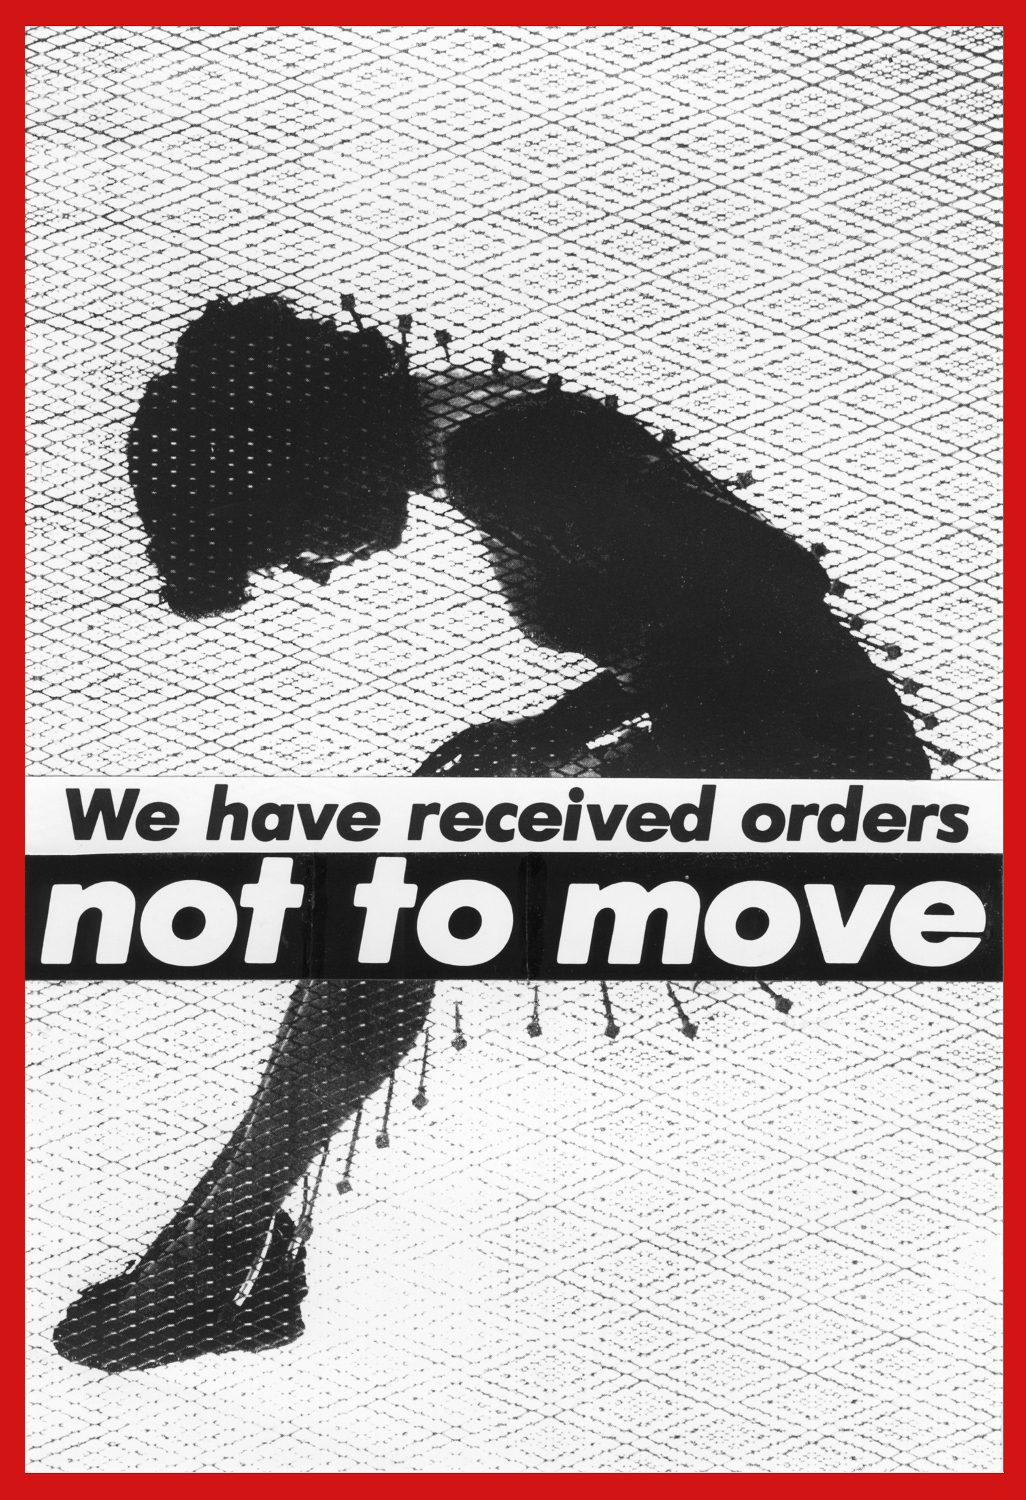 barbara kruger research Research barbara kruger consider a subscription more info untitled (look and listen) art images copyright© of artist or assignee subscribers may find the .